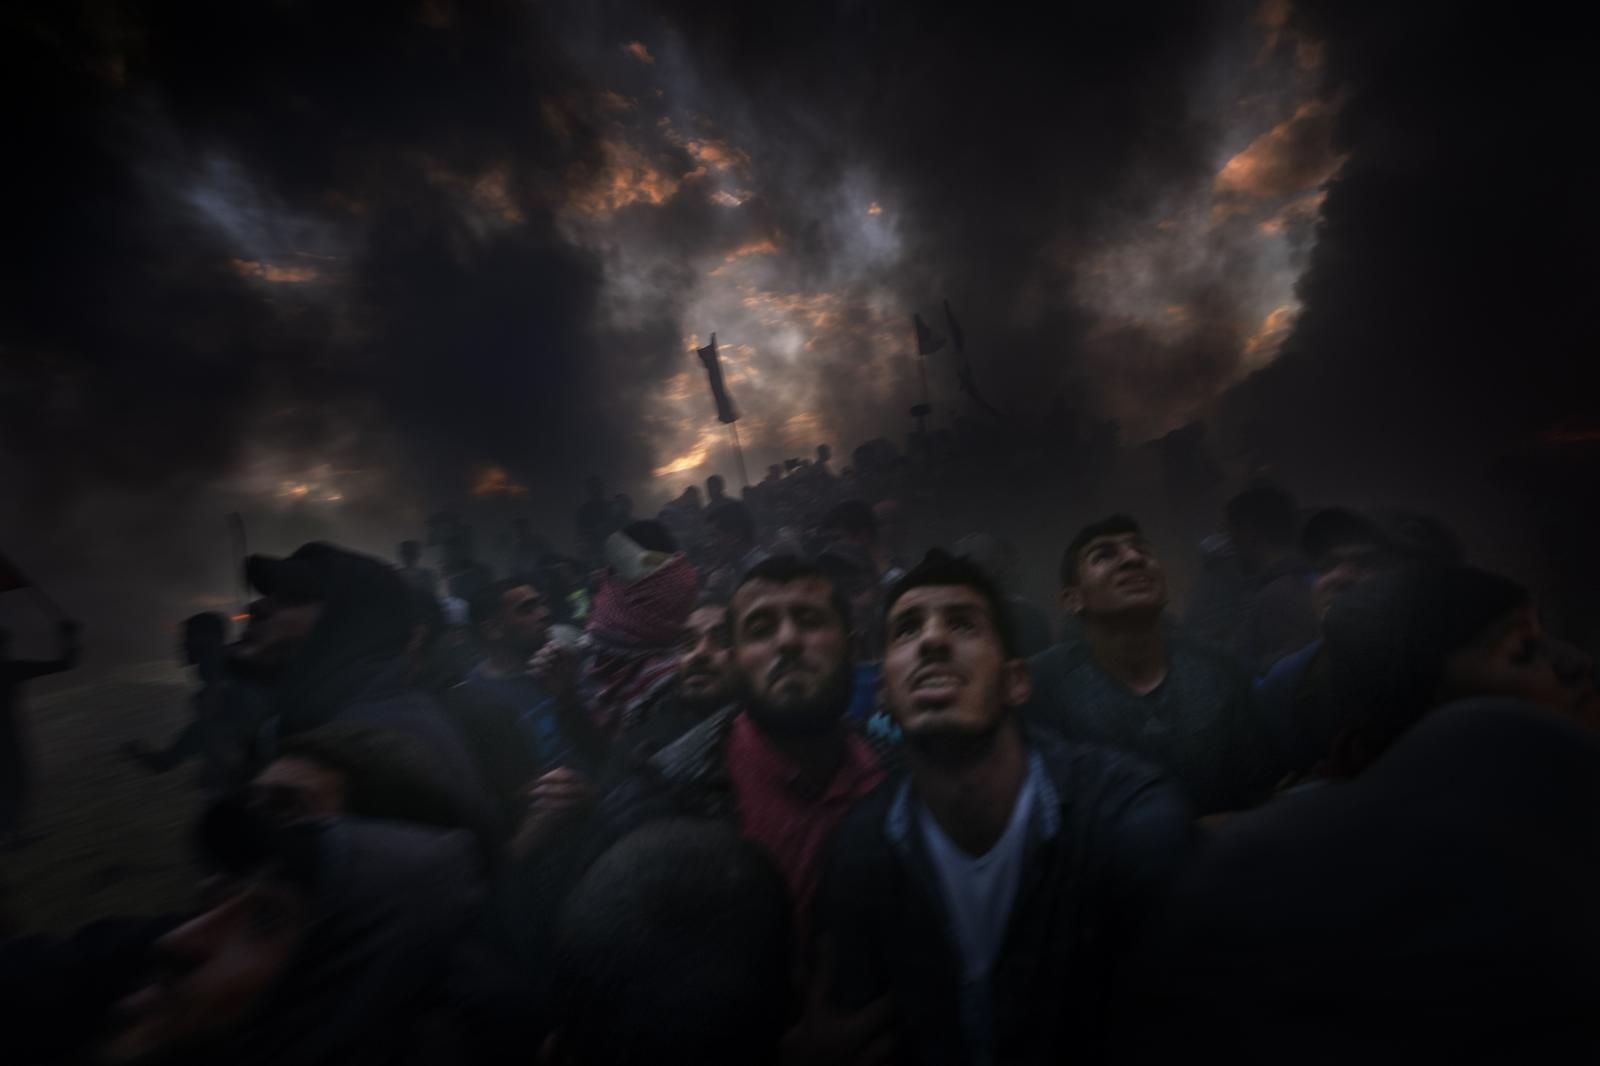 Palestinians enveloped in smoke from burnt tires look up at the sky in search of gas shells being fired at them. They try using the smoke to reach the limits of the fence, during the Great March; still, in each protest, the participants suffer a high rate of deaths and injuries (Gaza).